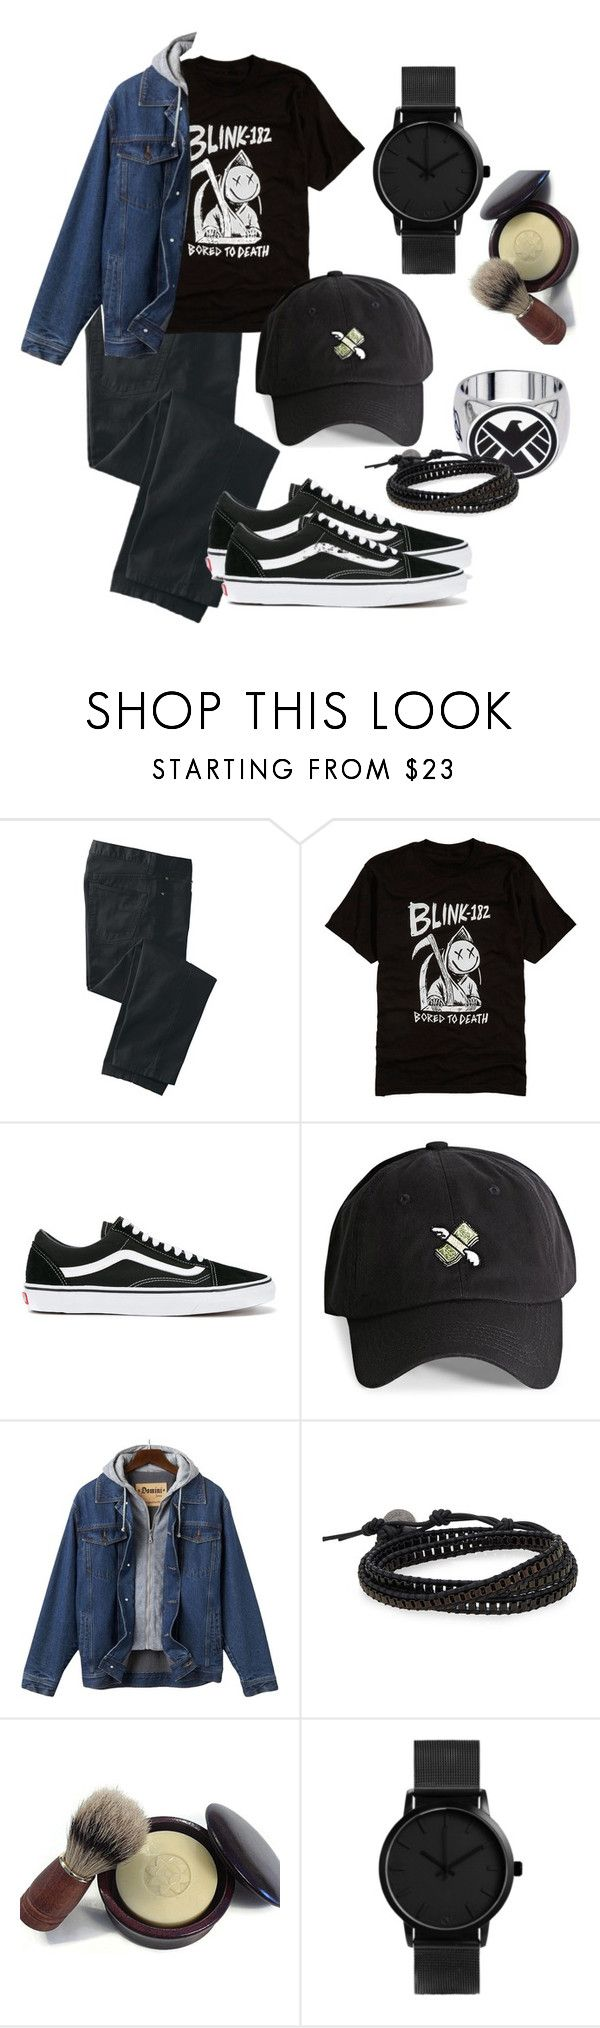 """""""Untitled #214"""" by fabiana-11 on Polyvore featuring TravelSmith, Vans, 21 Men, Jan Leslie, men's fashion and menswear"""